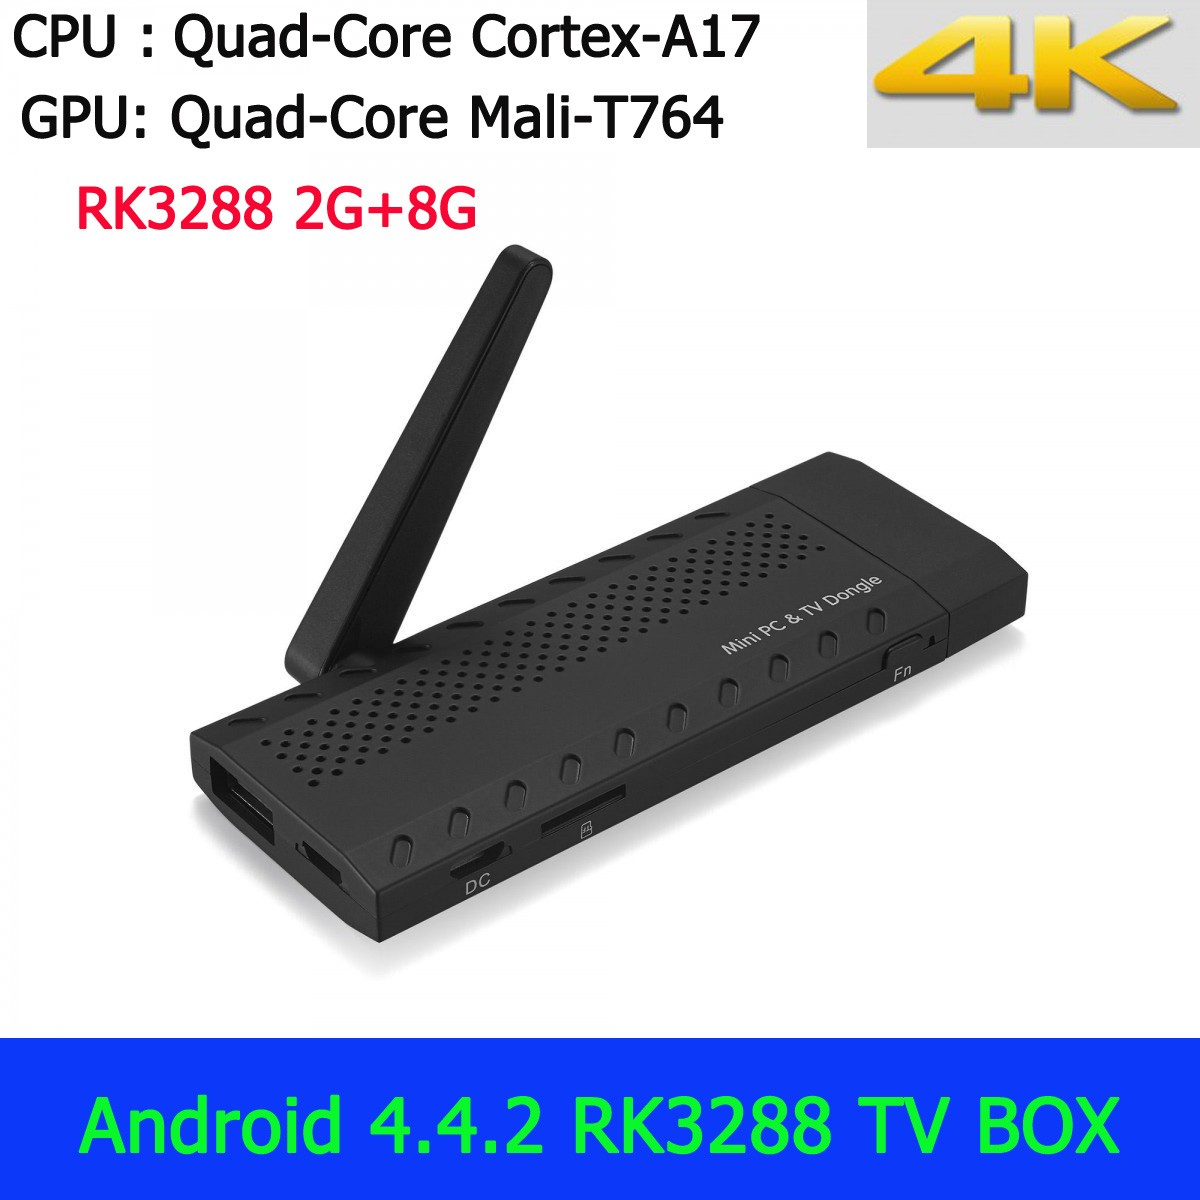 RK3288 Smart TV BOX Quad Core Cortex-A17 Mali-T764 2G 8G Mini PC 4K Android 4.4.2 PC Google TV Box Bluetooth 4.0 Dongle HDMI(China (Mainland))